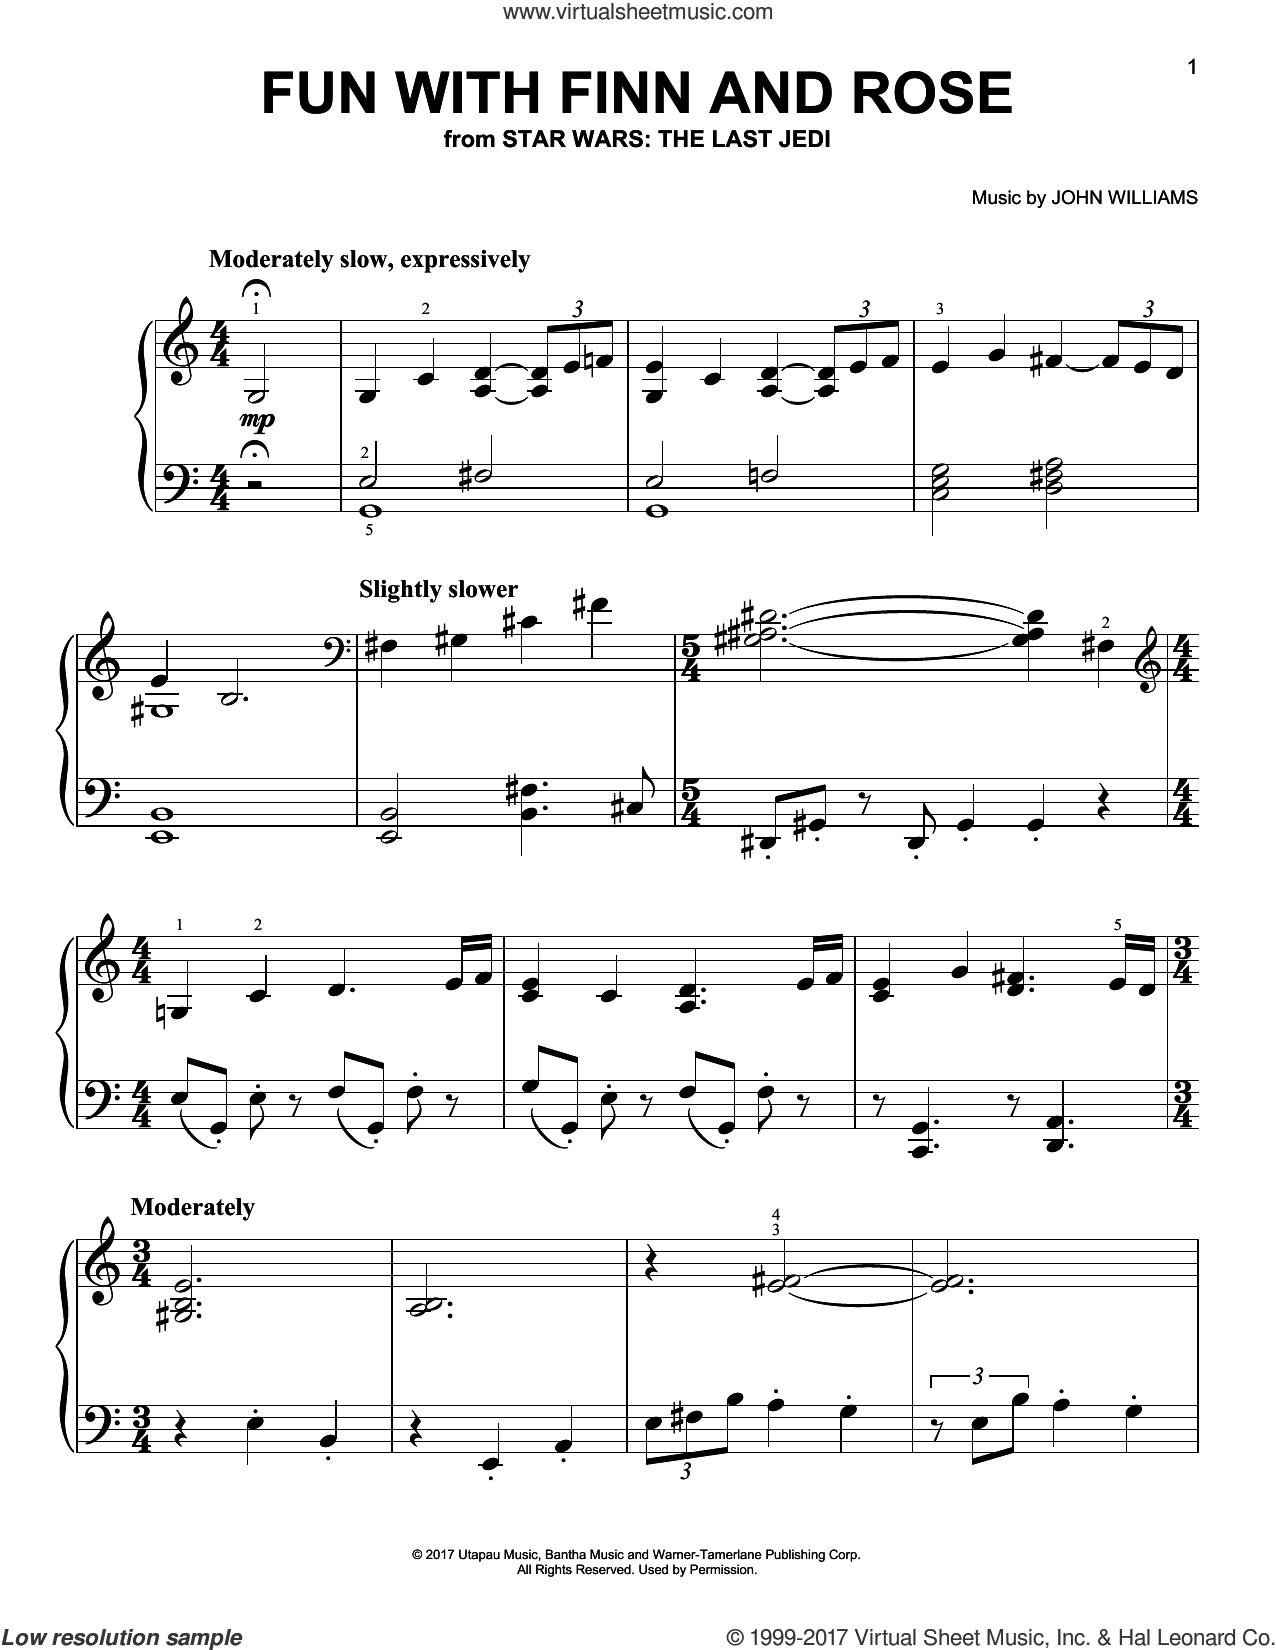 Fun With Finn And Rose sheet music for piano solo by John Williams, easy skill level